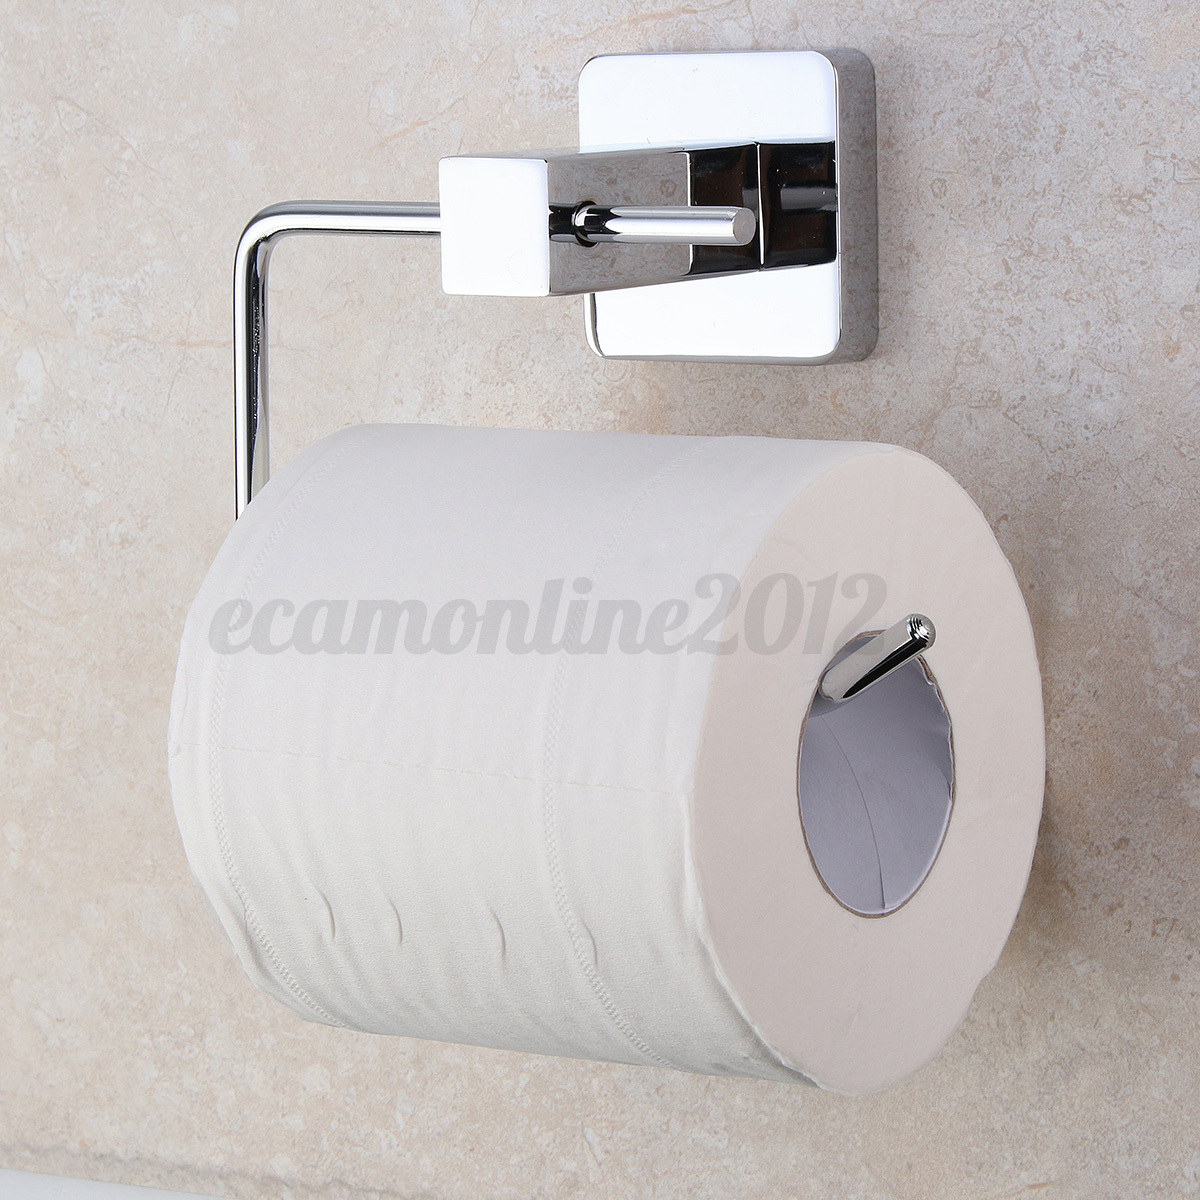 Stainless Steel Toilet Paper Stand Stainless Steel Chrome Bathroom Toilet Paper Roll Tissue